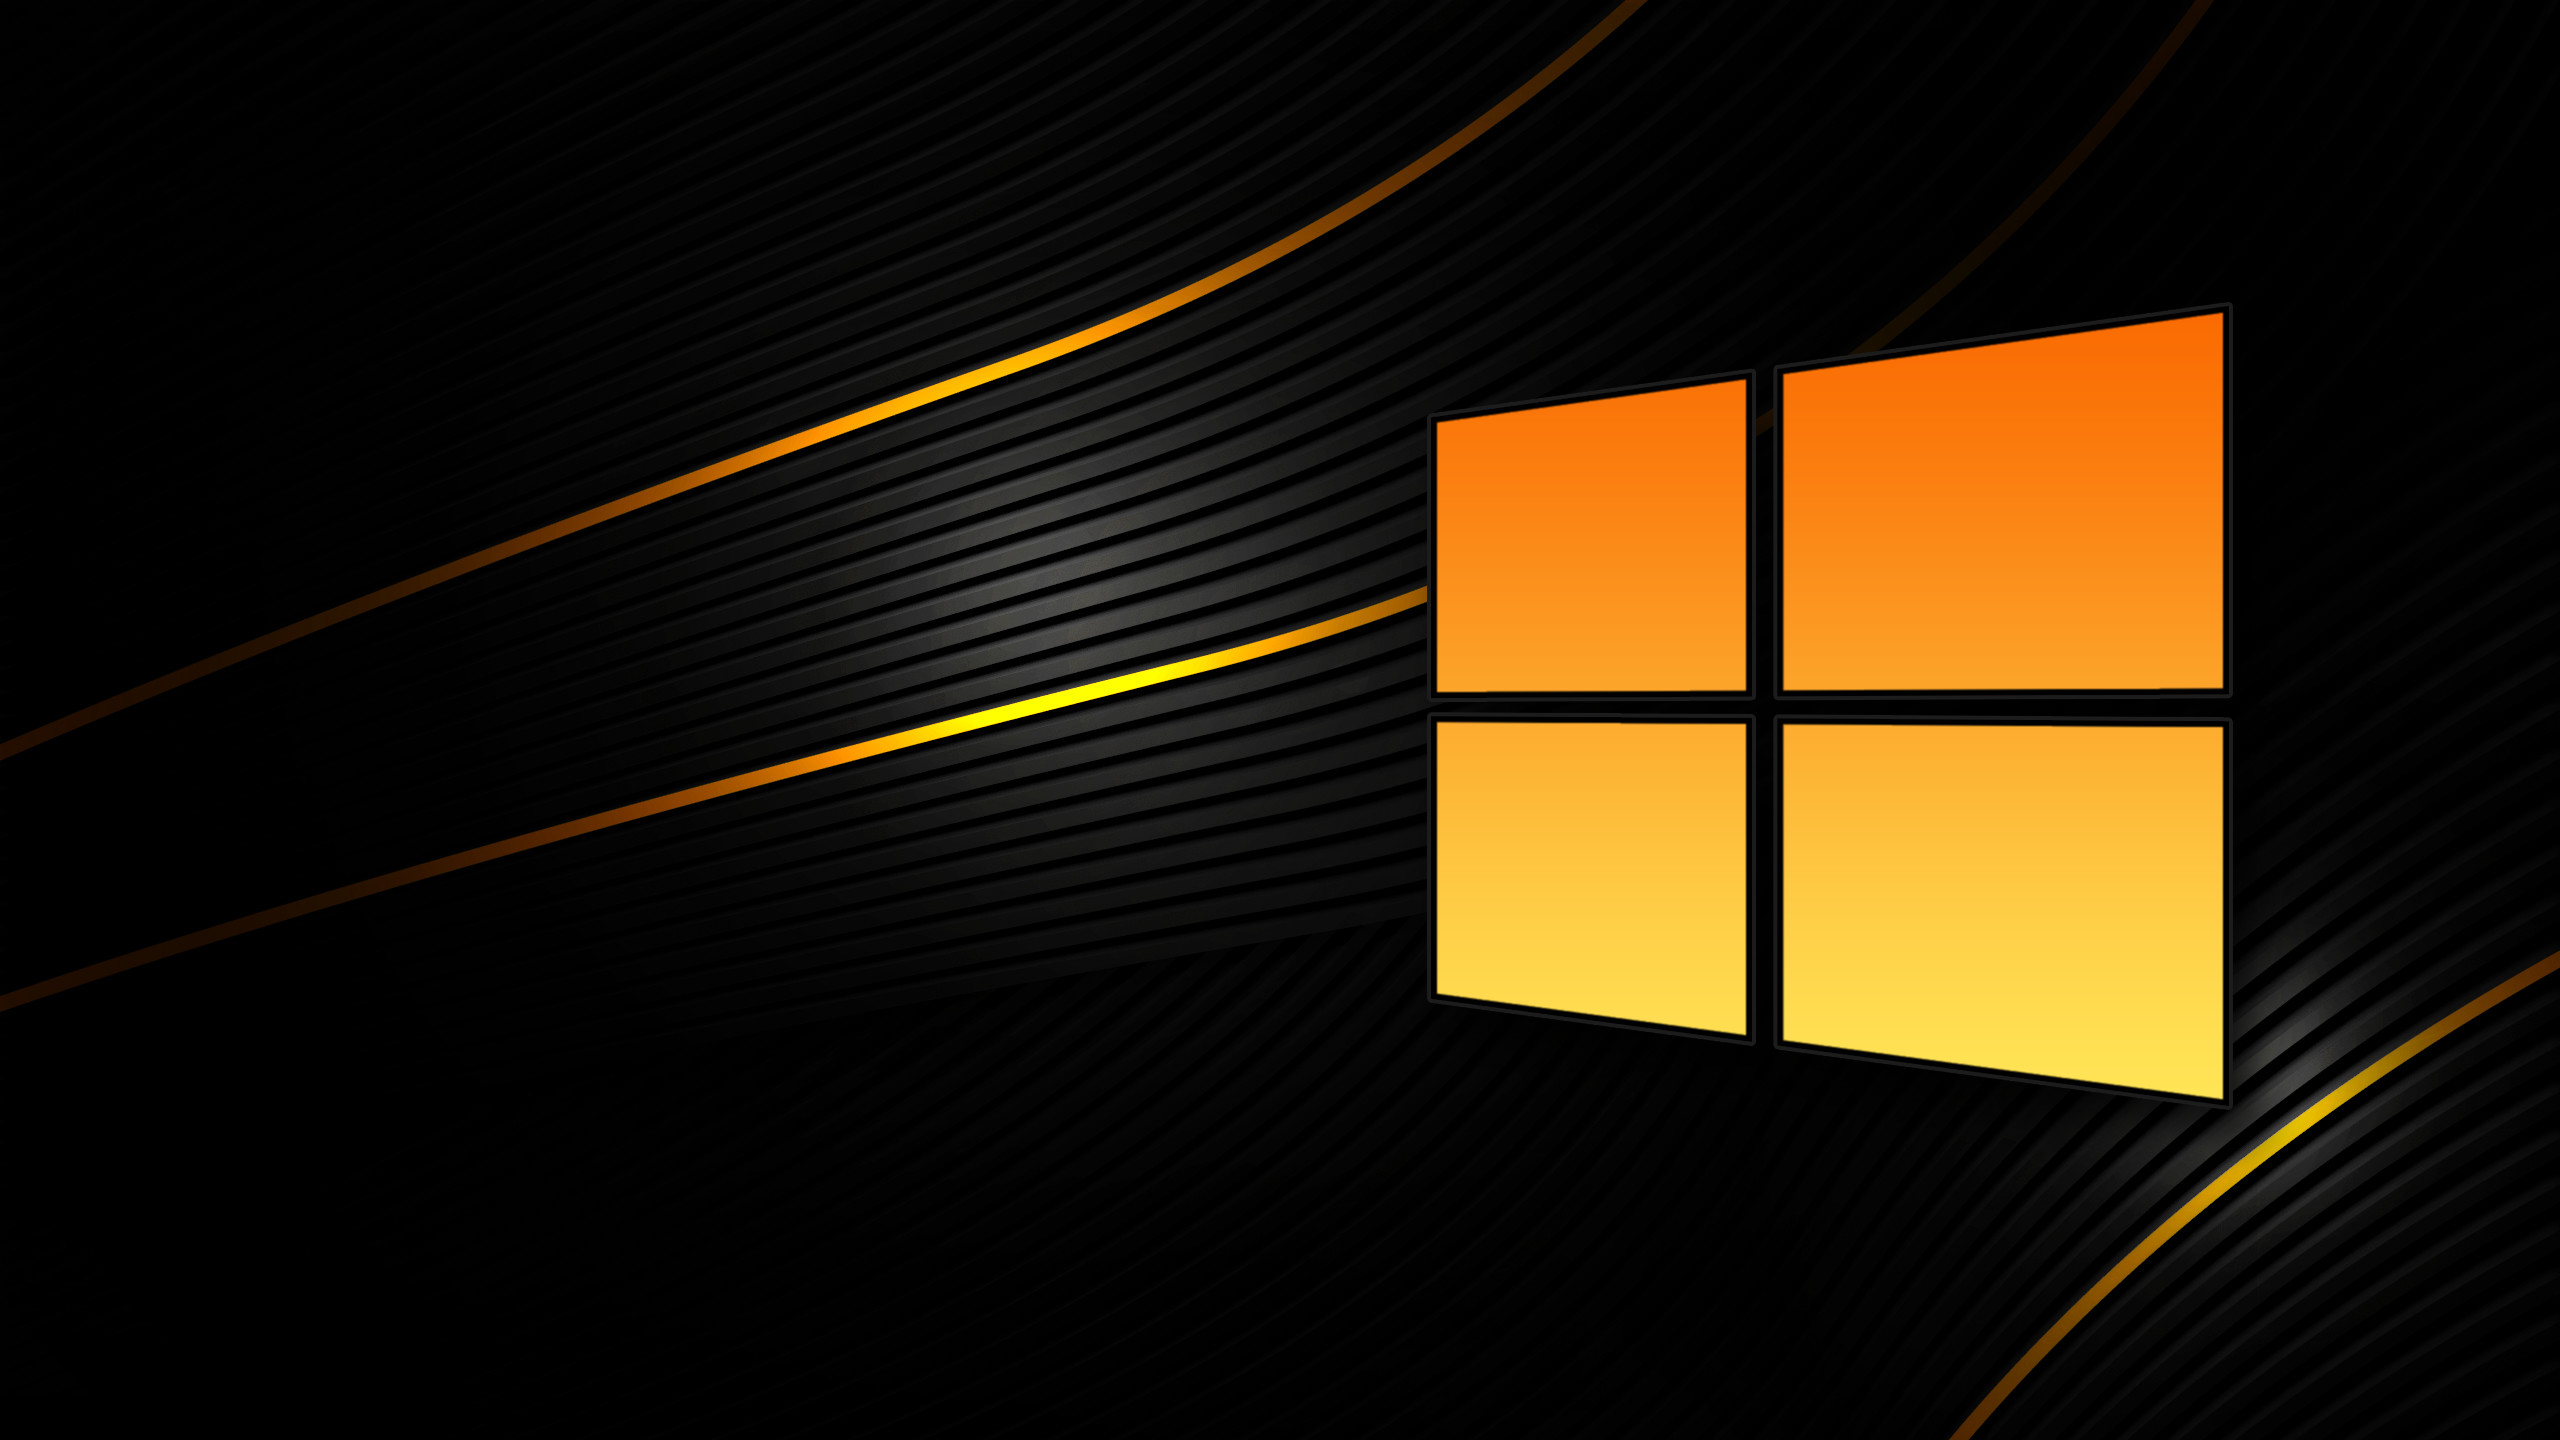 Free 3d Widescreen Wallpapers For Pc 2560x1440 Wallpaper Windows 10 73 Images